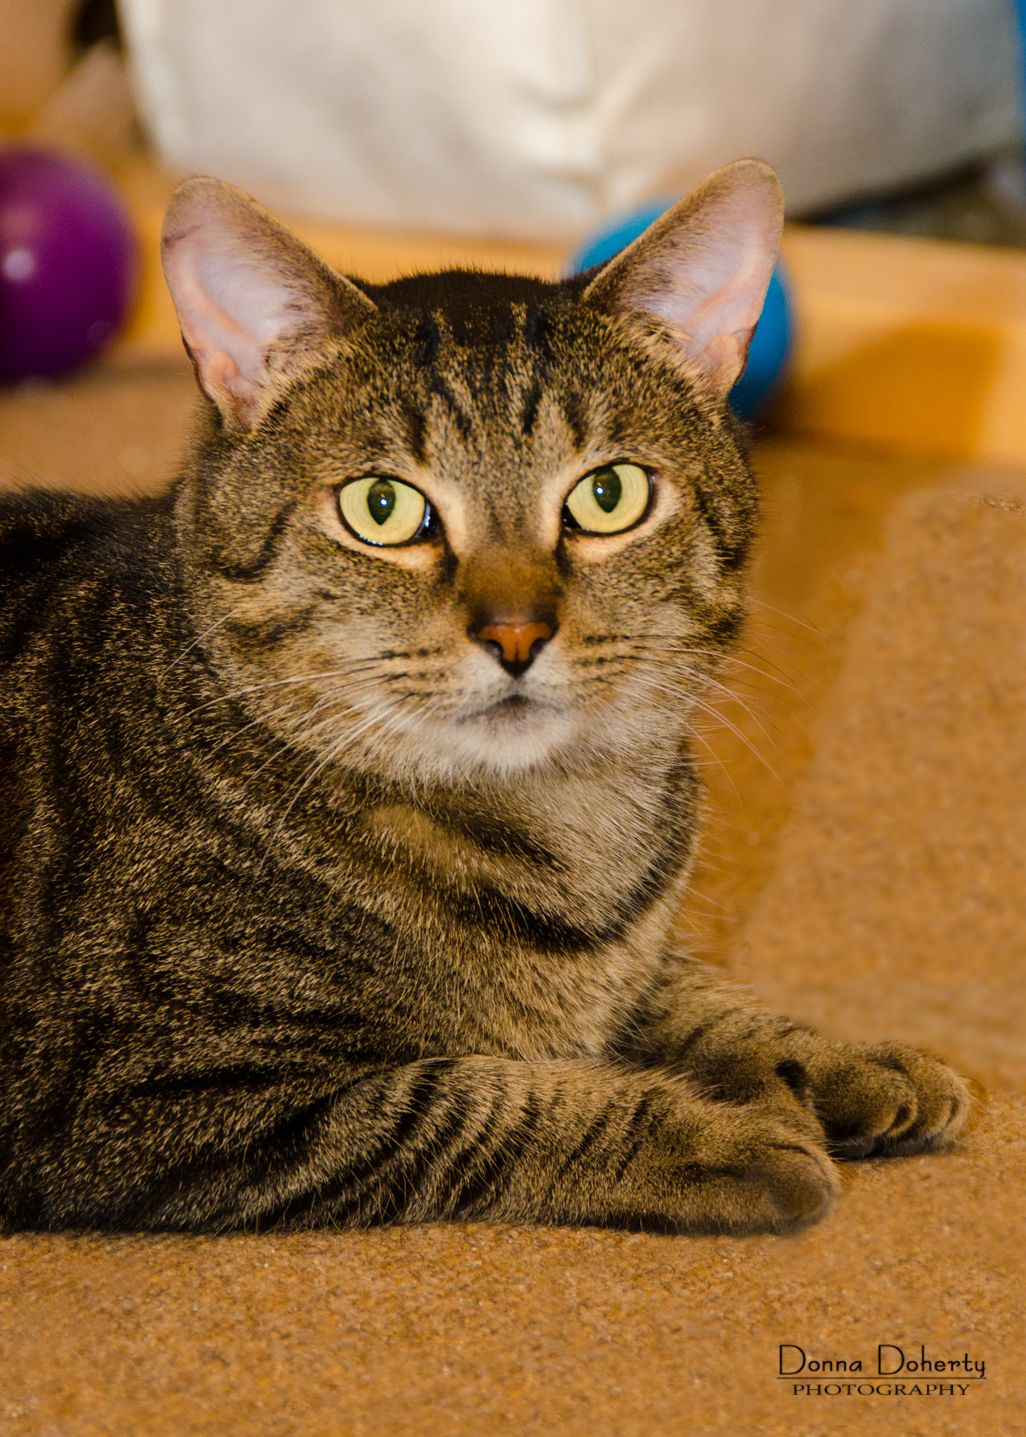 Ashes is a super sweet and affectionate 3 year old